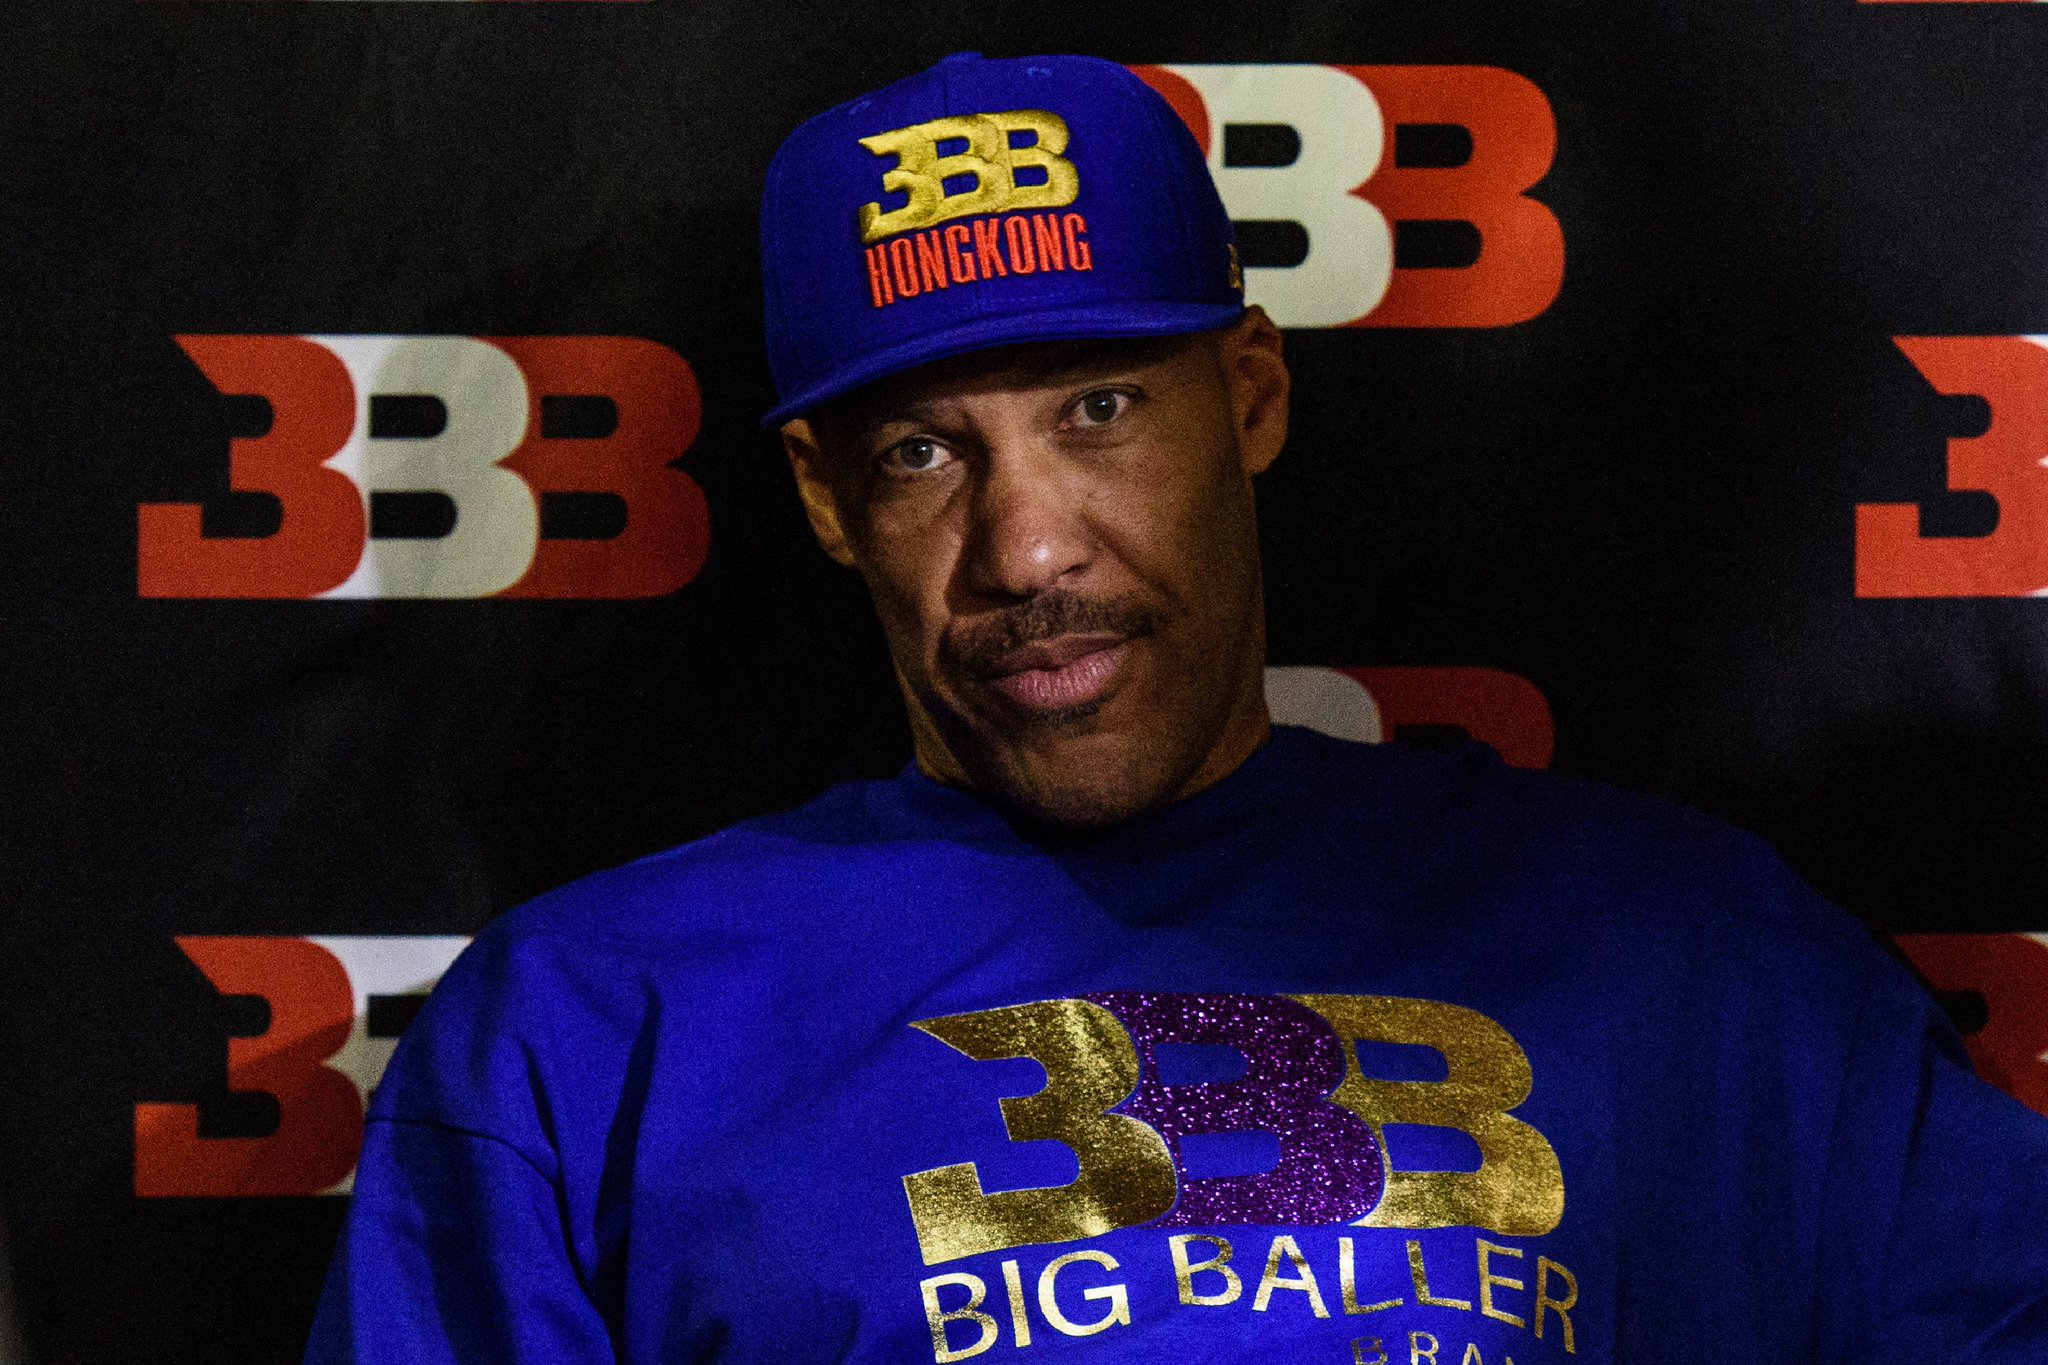 """LaVar Ball says Donald Trump didn't help get LiAngelo released from shoplifting: """"Who?"""" https://t.co/KwOmRfI5cX https://t.co/0AKuteP3R4"""